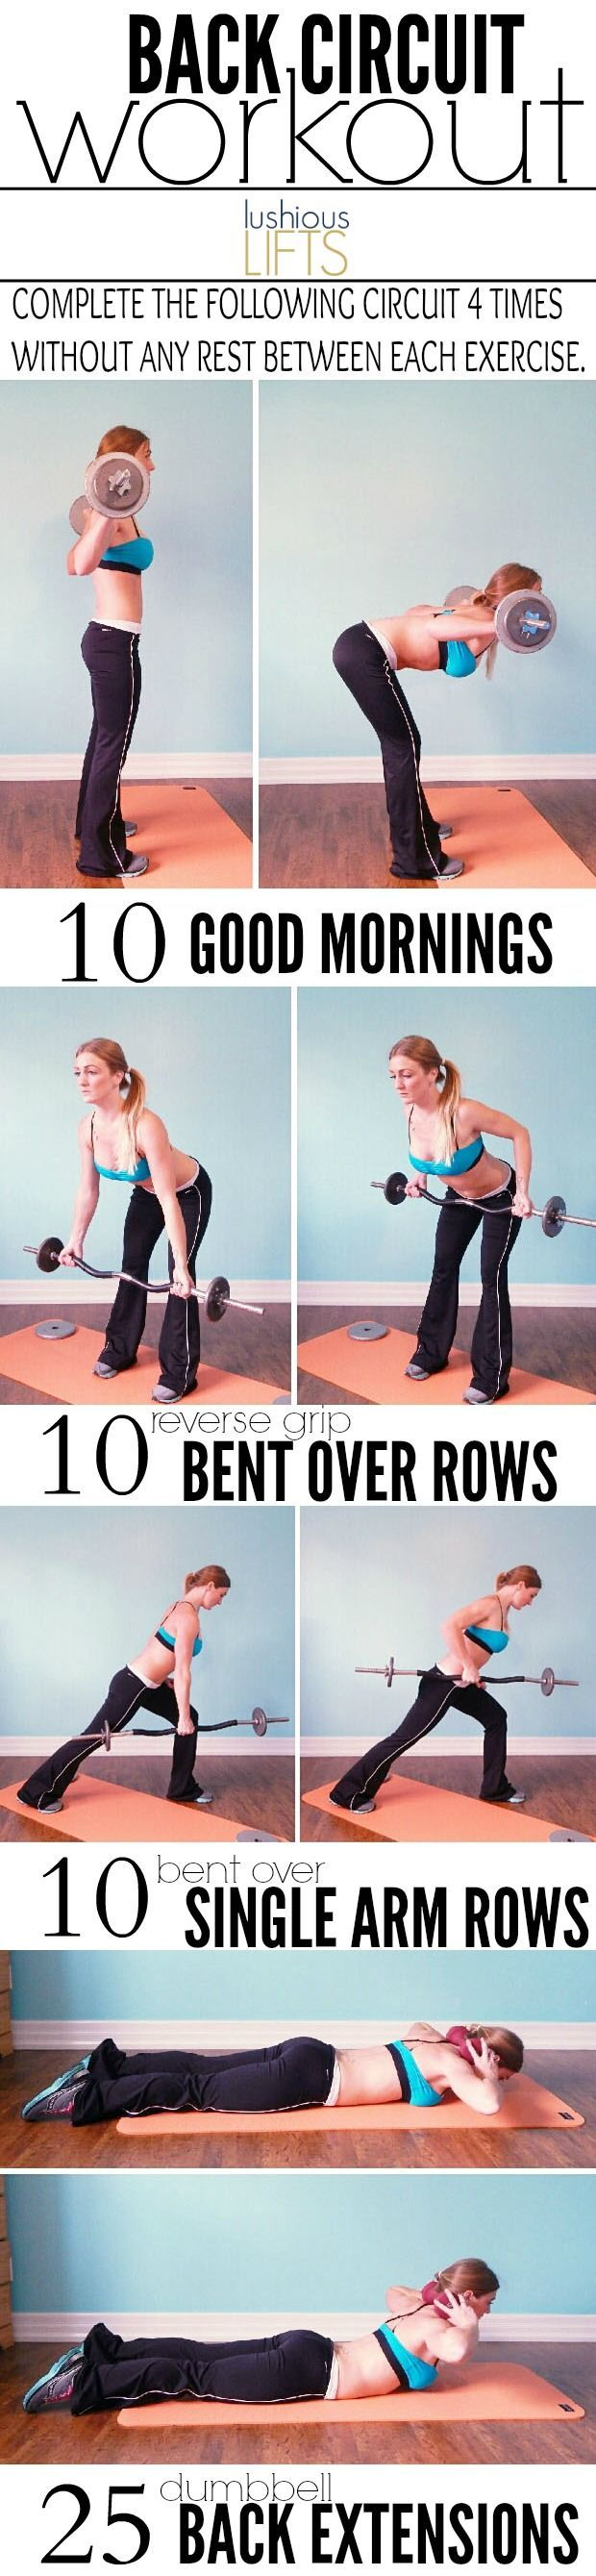 See more here ► https://www.youtube.com/watch?v=fyYVMDPMa68 Tags: fastest and healthiest way to lose weight, fastest healthiest way to lose weight, fastest healthiest way to lose weight - It's time for a back attack! This workout is targeting both your upper and lower back, plus a little rhomboid action with the reverse grip rows. ;) Suggested Equipment + Barbell + Dumbbell + Weight... #exercise #diet #workout #fitness #health